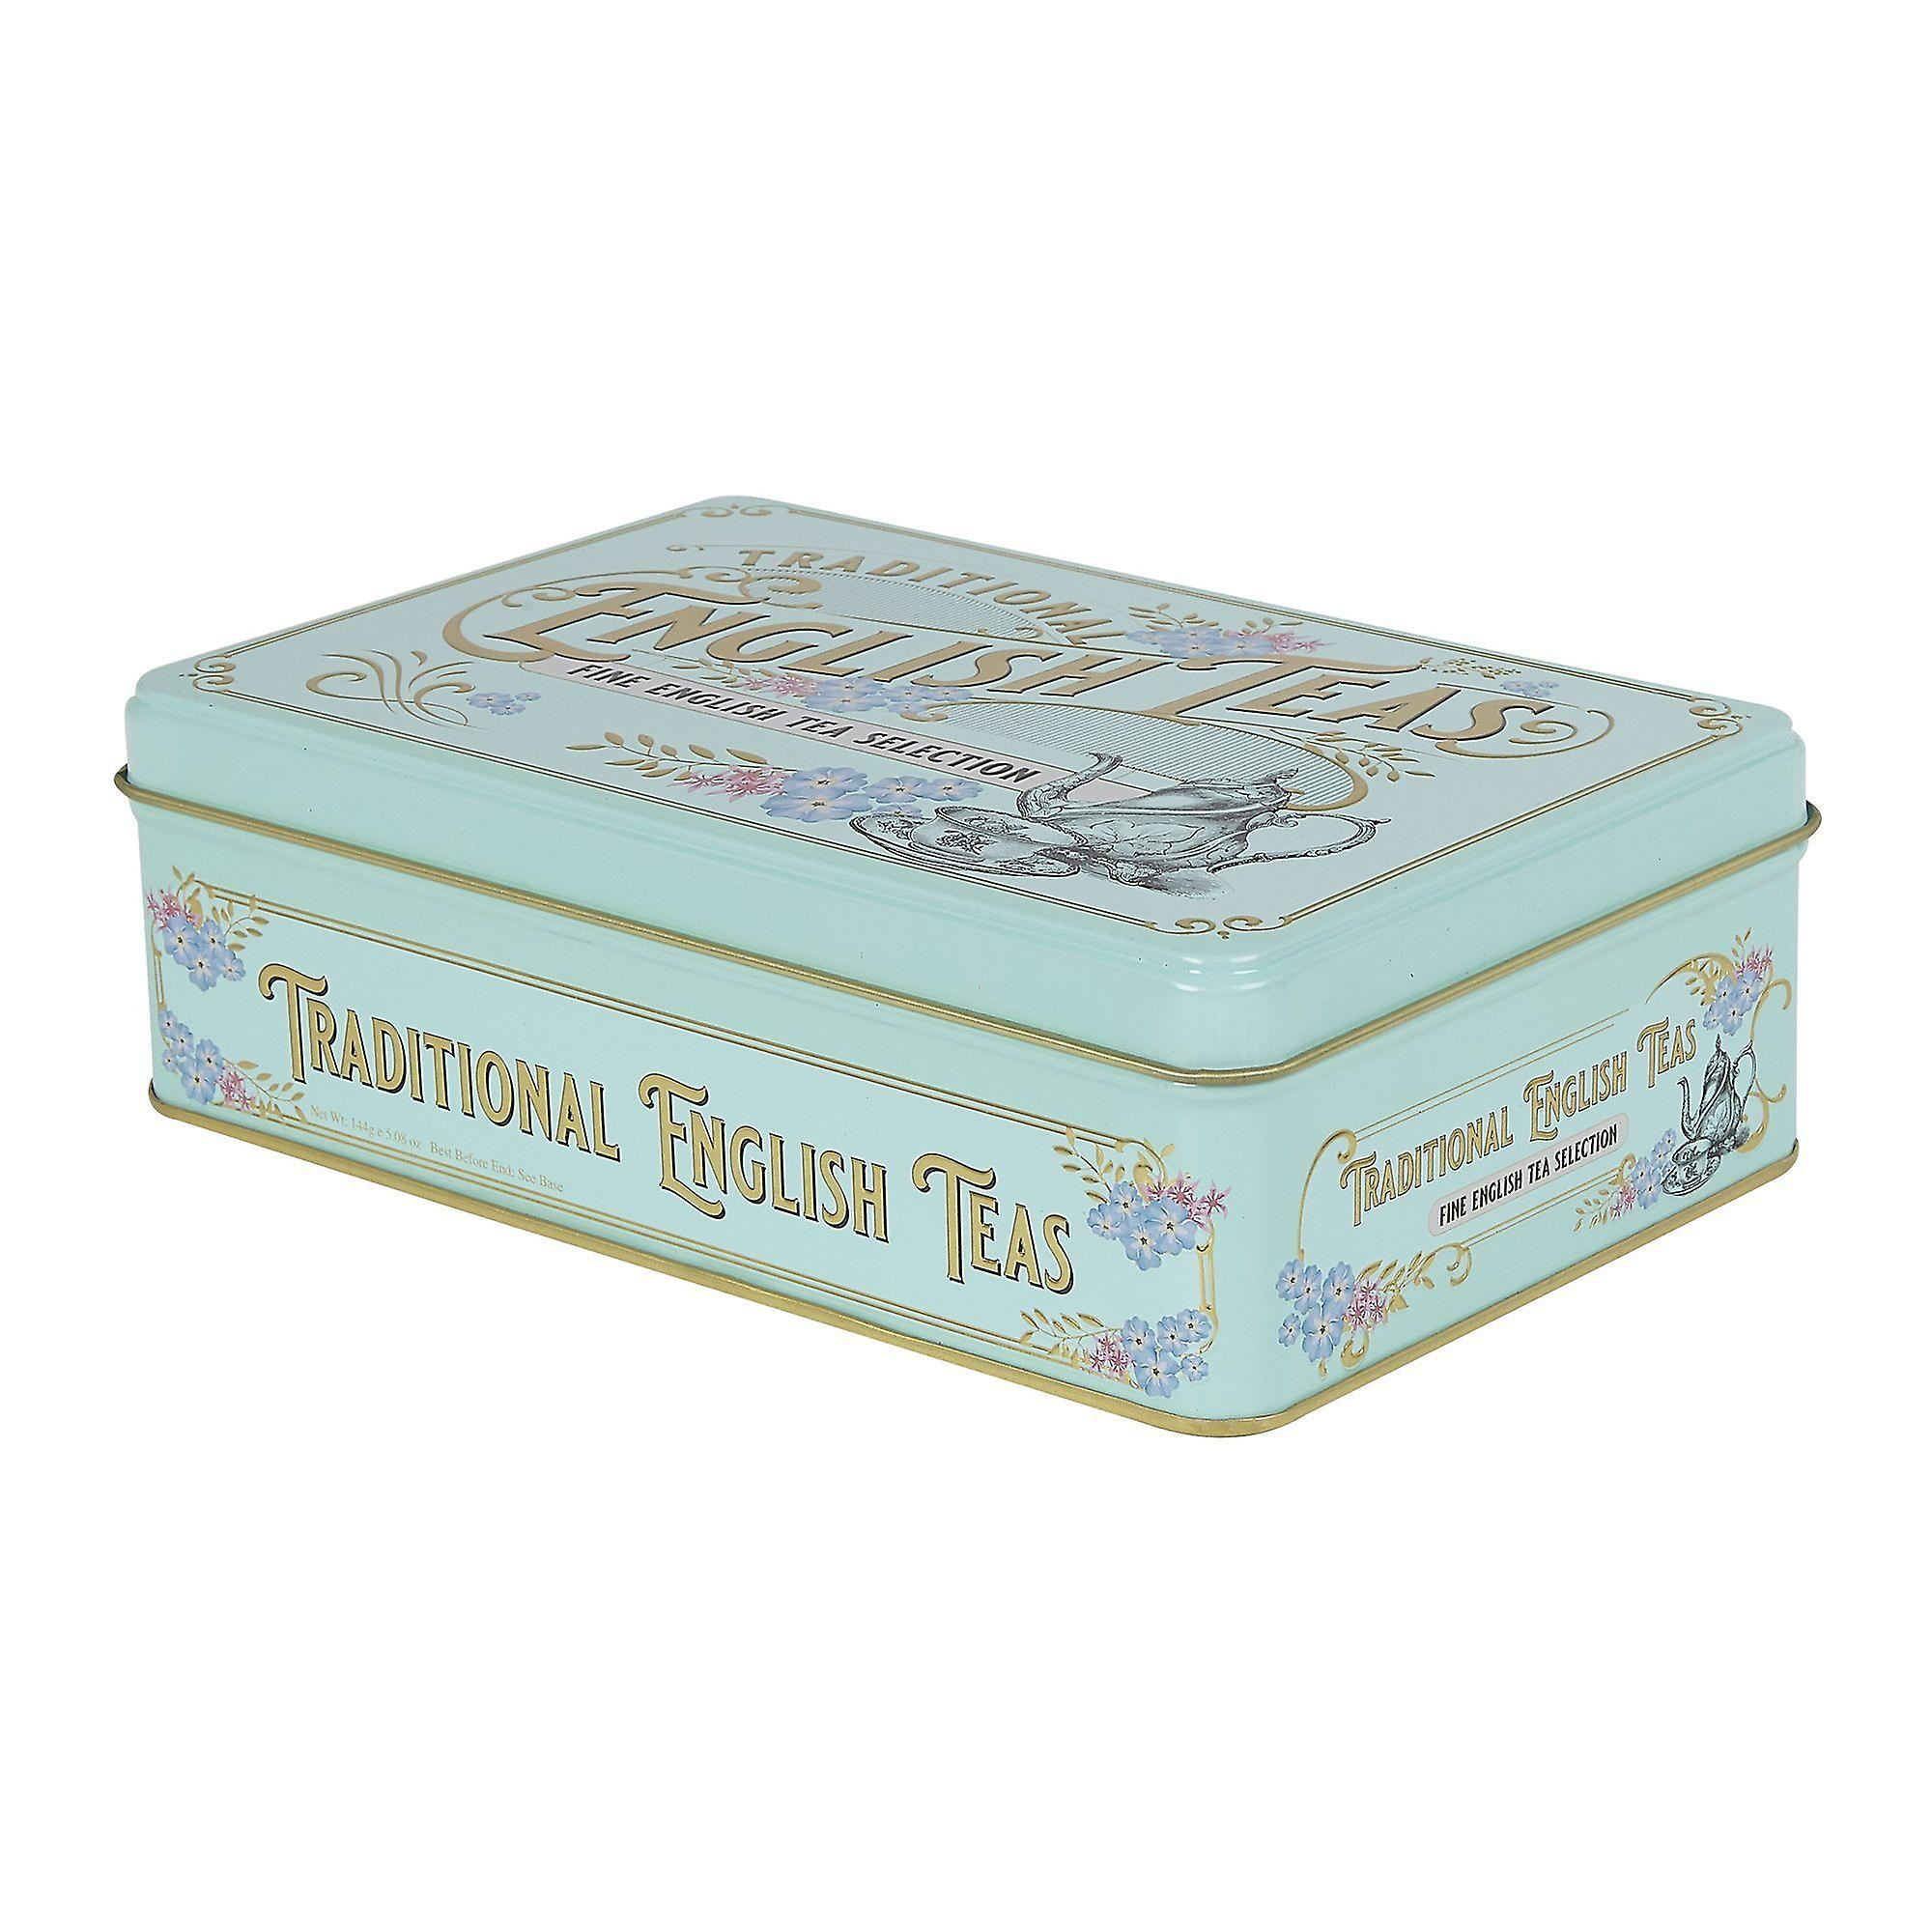 Vintage victorian english tea tin 72 teabags